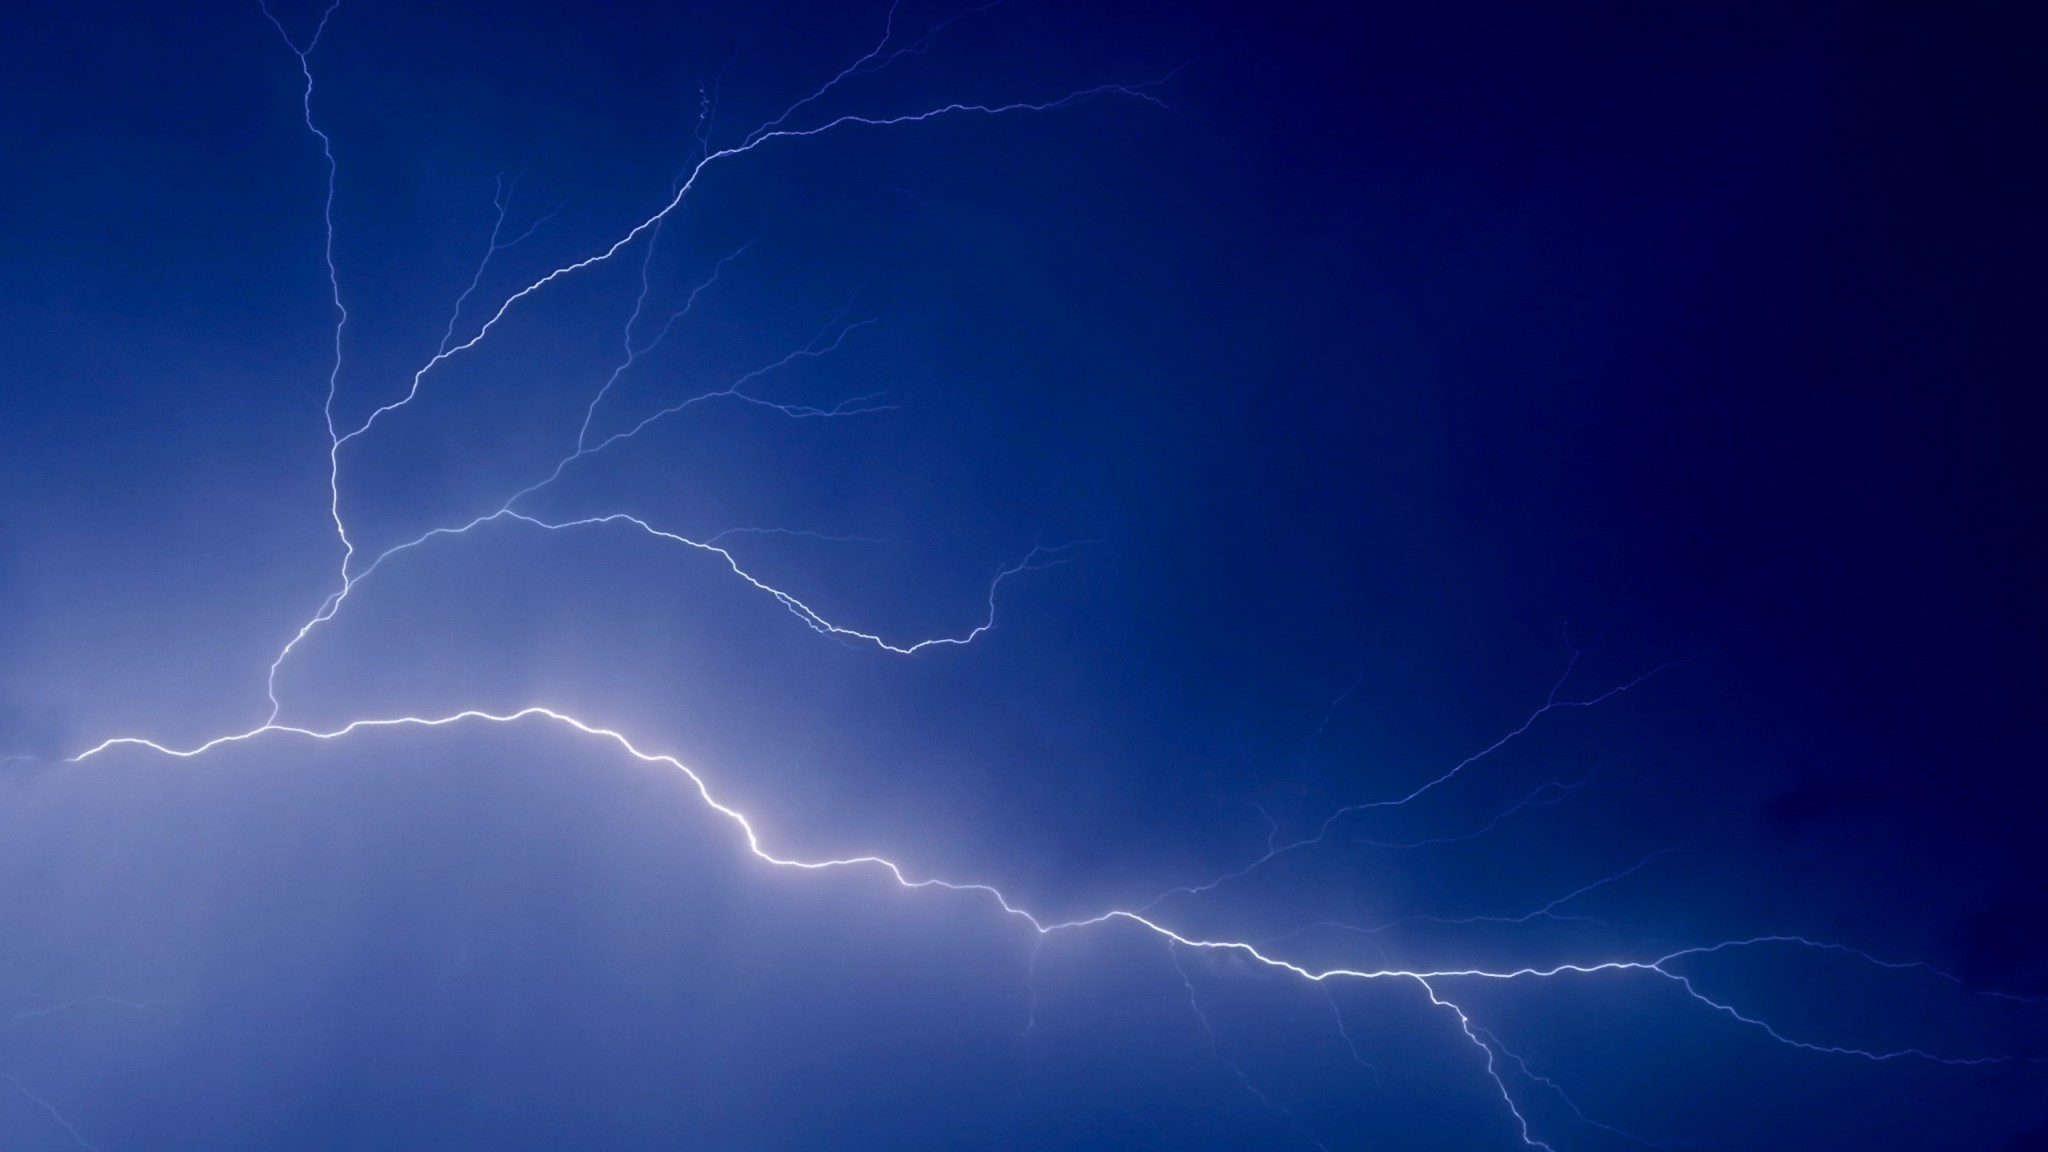 2048x1152  Wallpaper sky, lightning, peal, lines, dark blue, electricity